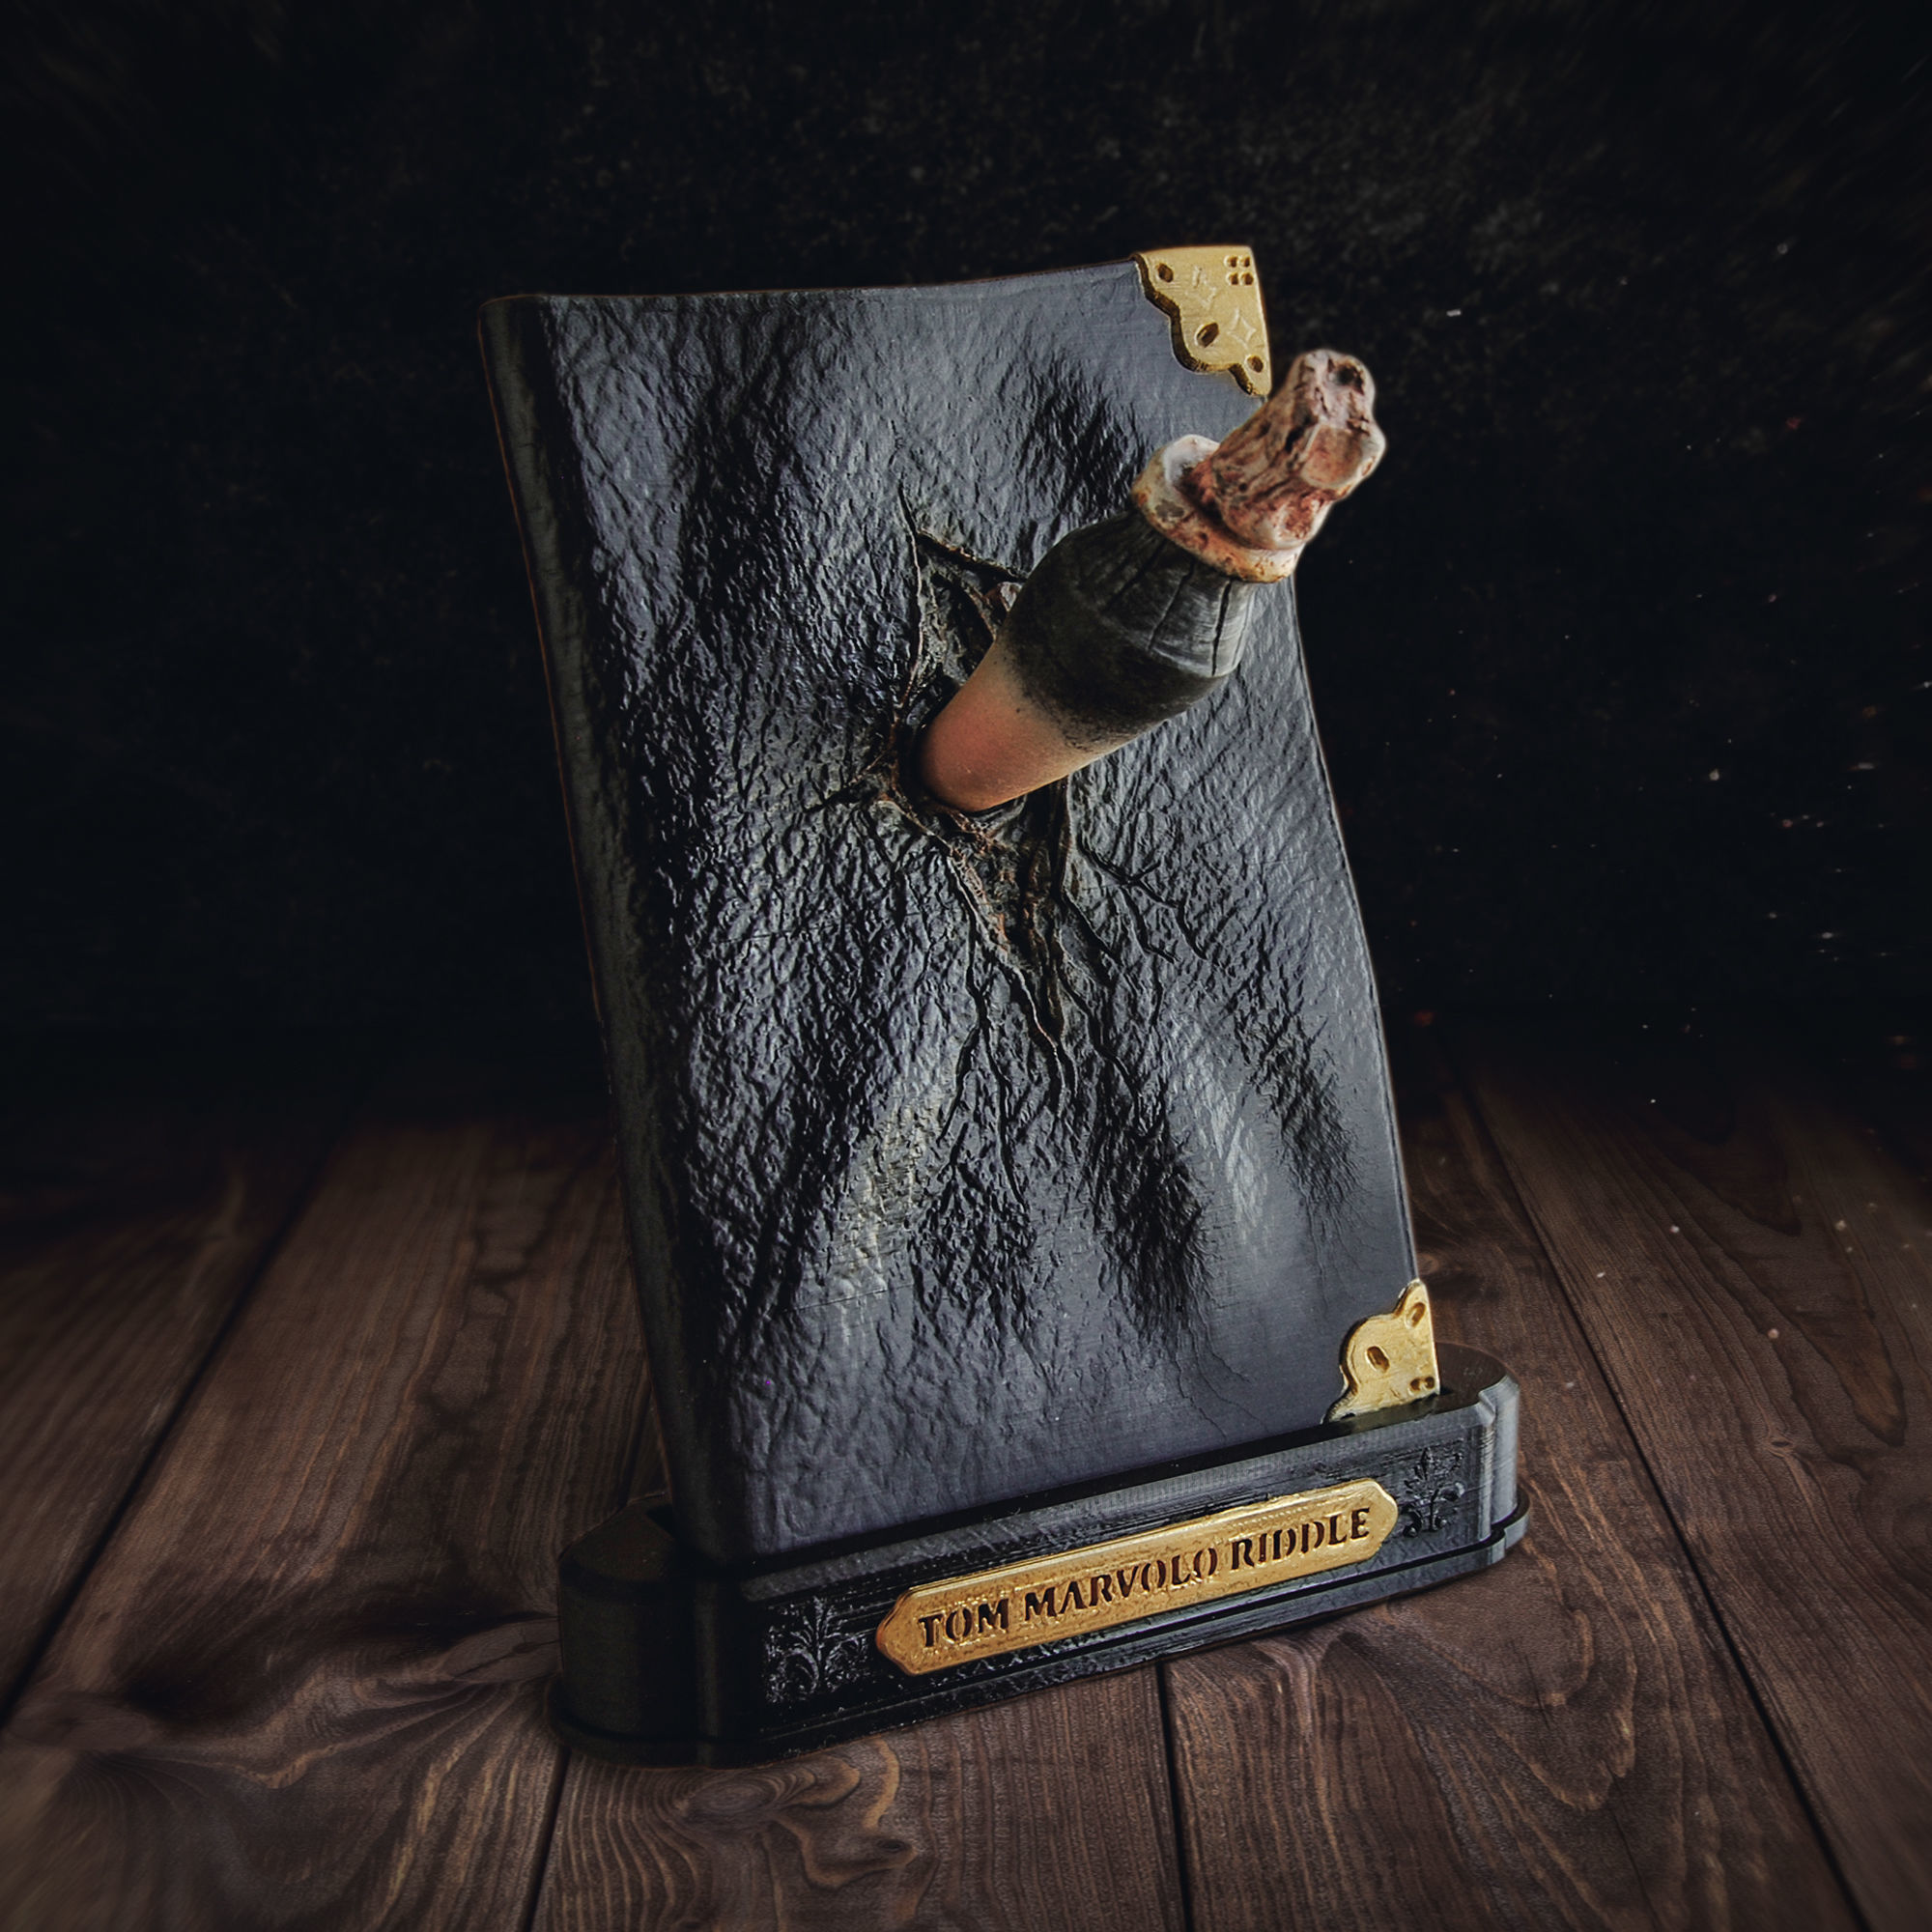 Tom Riddle Diary and The Basilisk Fang - Harry Potter